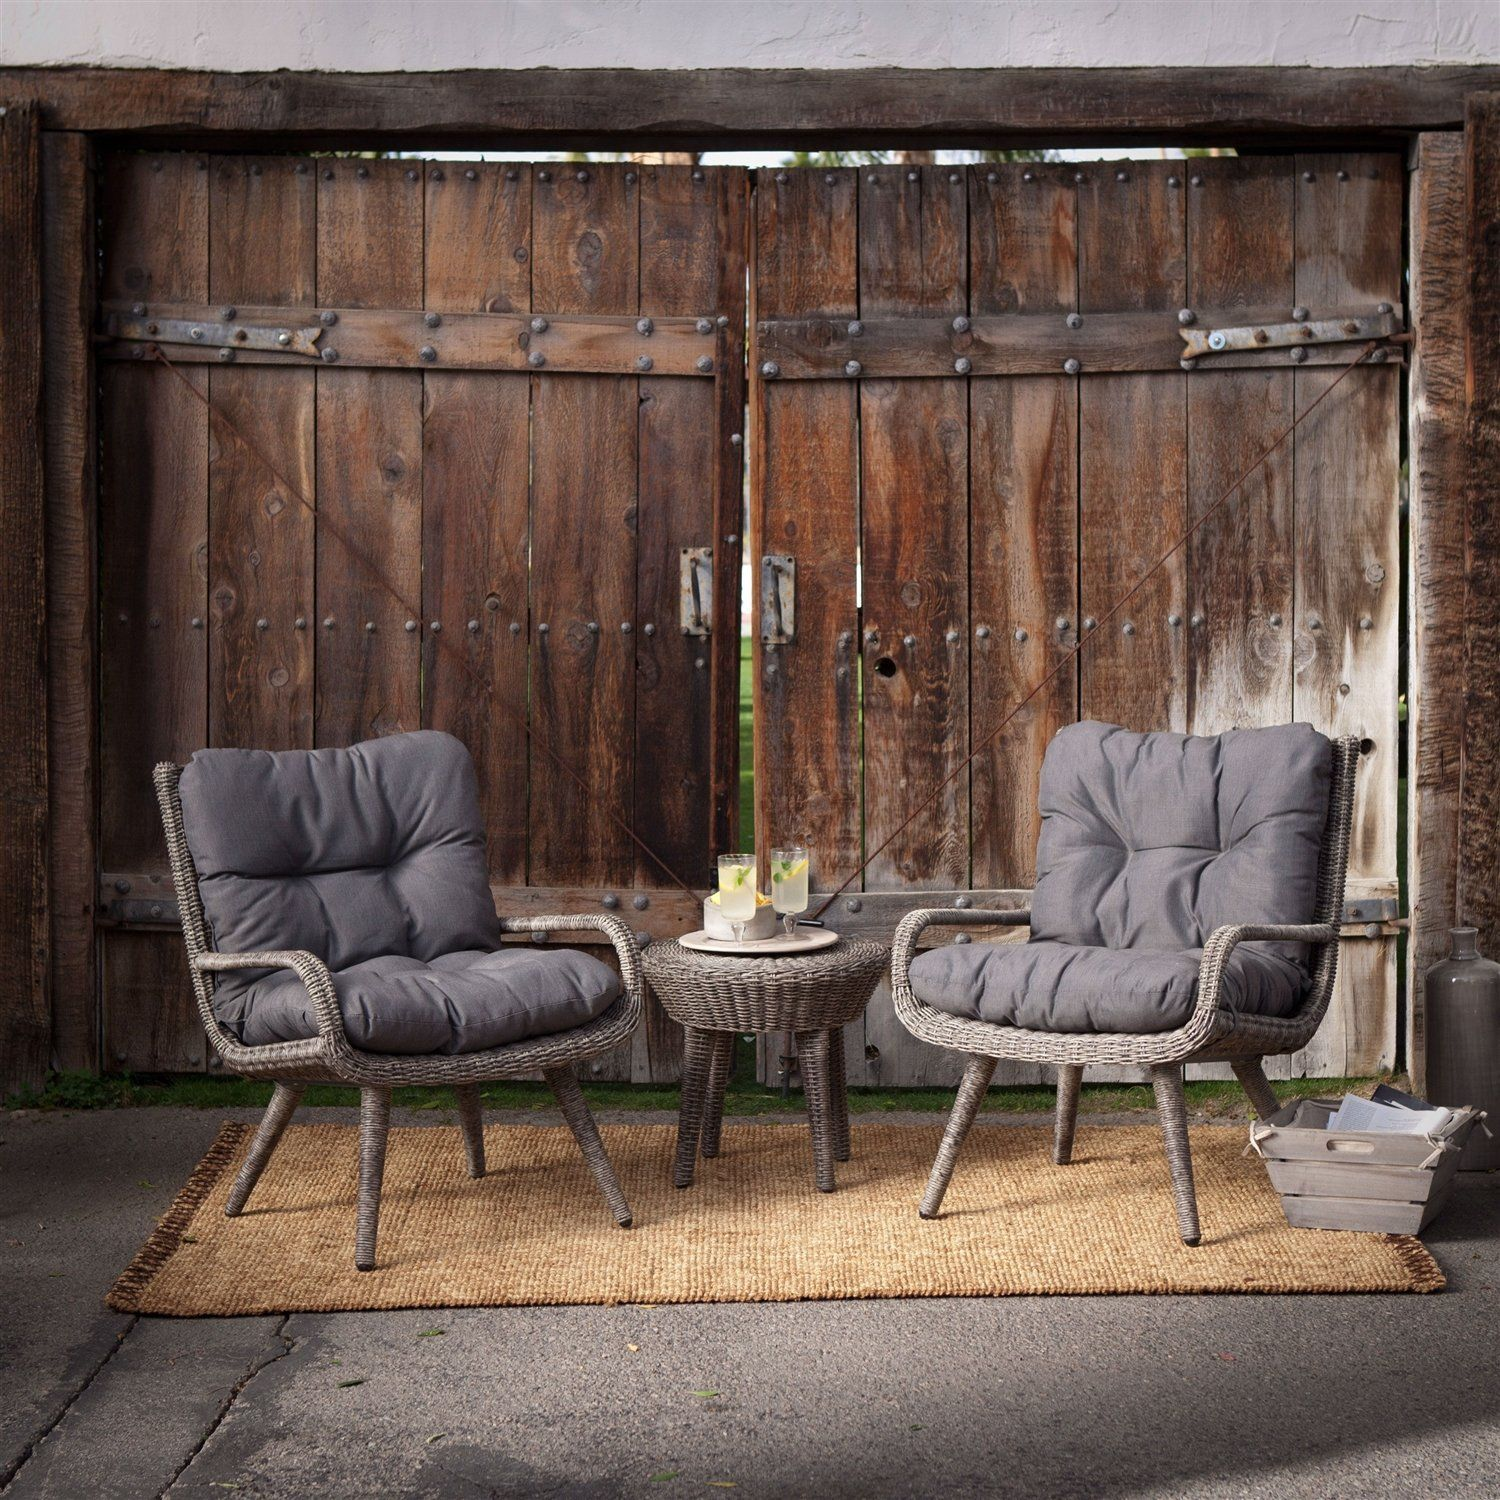 Weather Resistant Wicker Resin Patio Furniture Set with 2 Chairs Cushions and Side Table #resinpatiofurniture